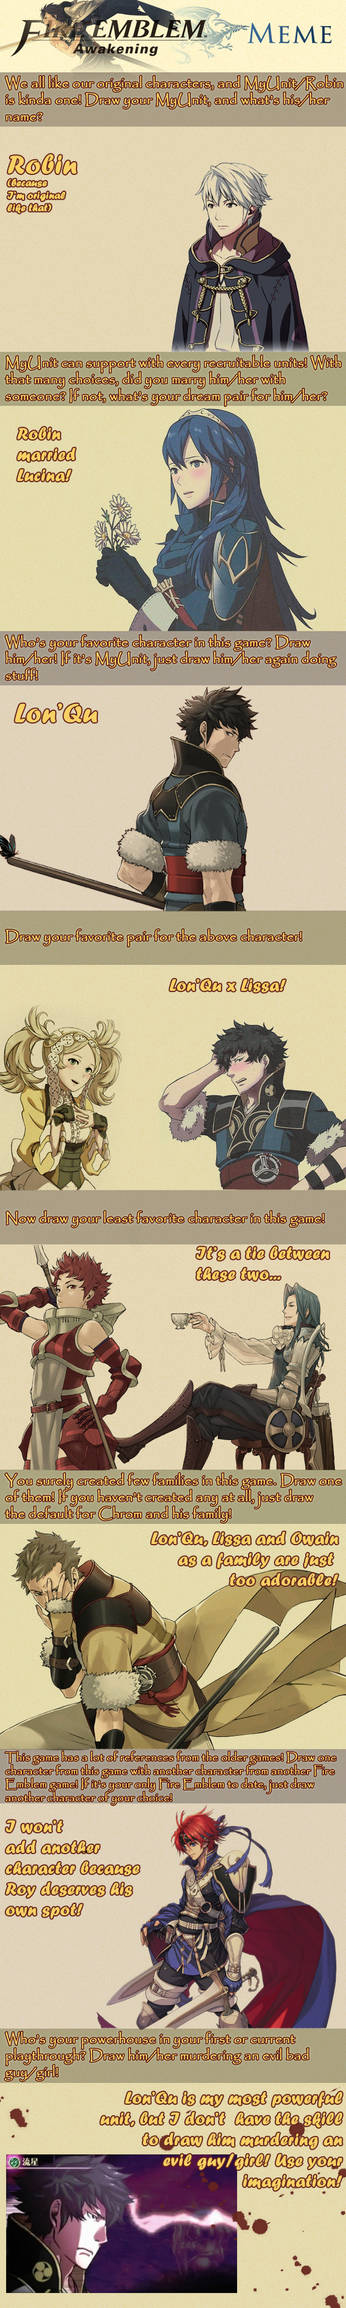 Fire Emblem Awakening Meme by NinjaMatty